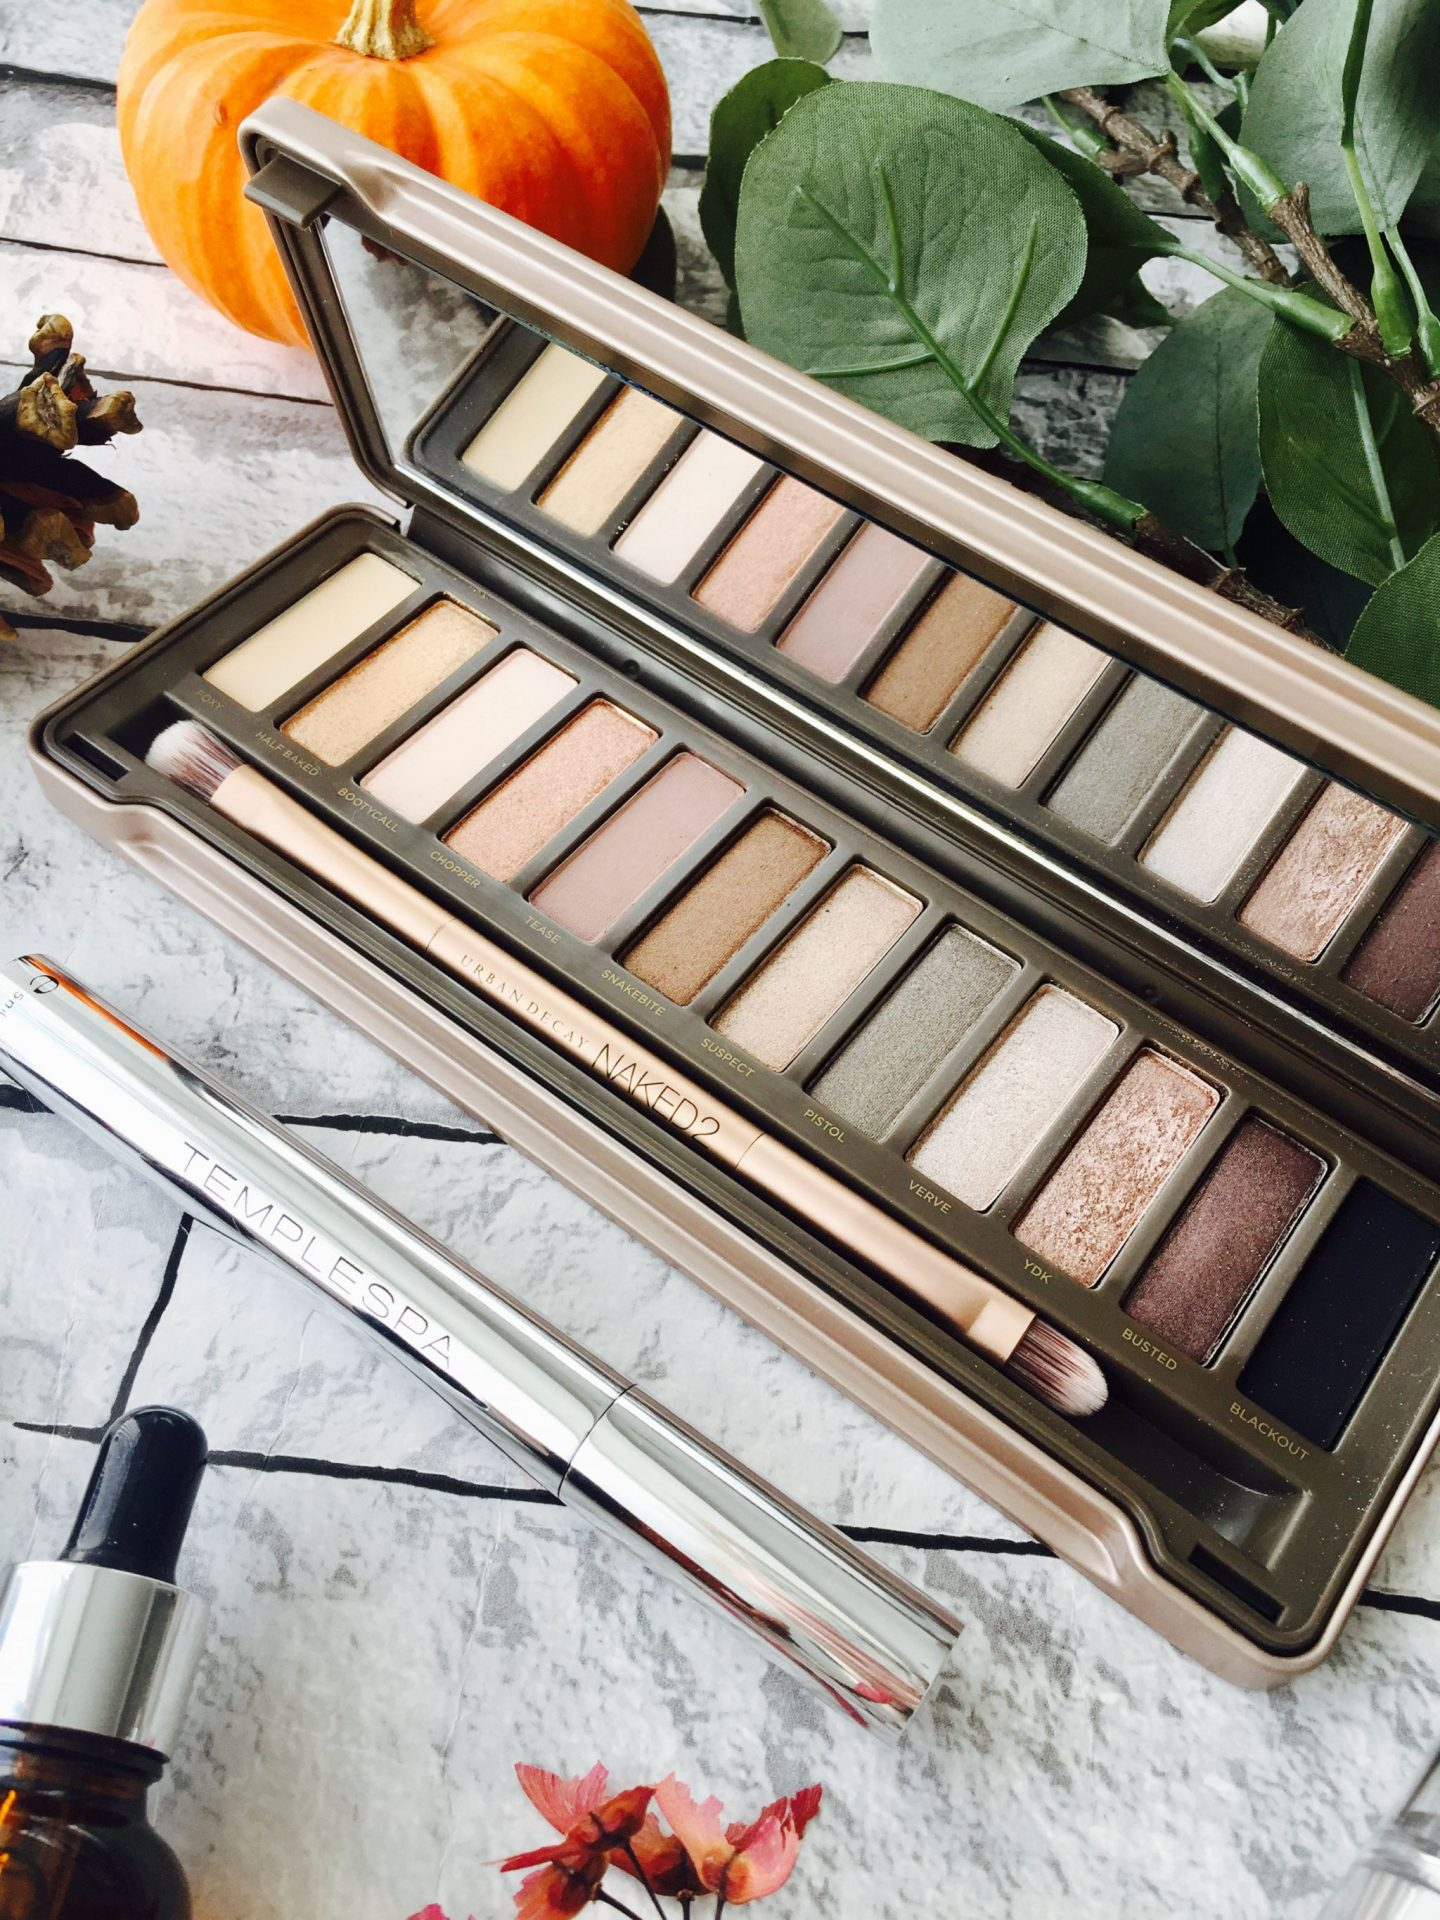 October Favourites 2017 Omorovicza Urban Veda Urban Decay Naked 2 palette Laura Geller Temple Spa